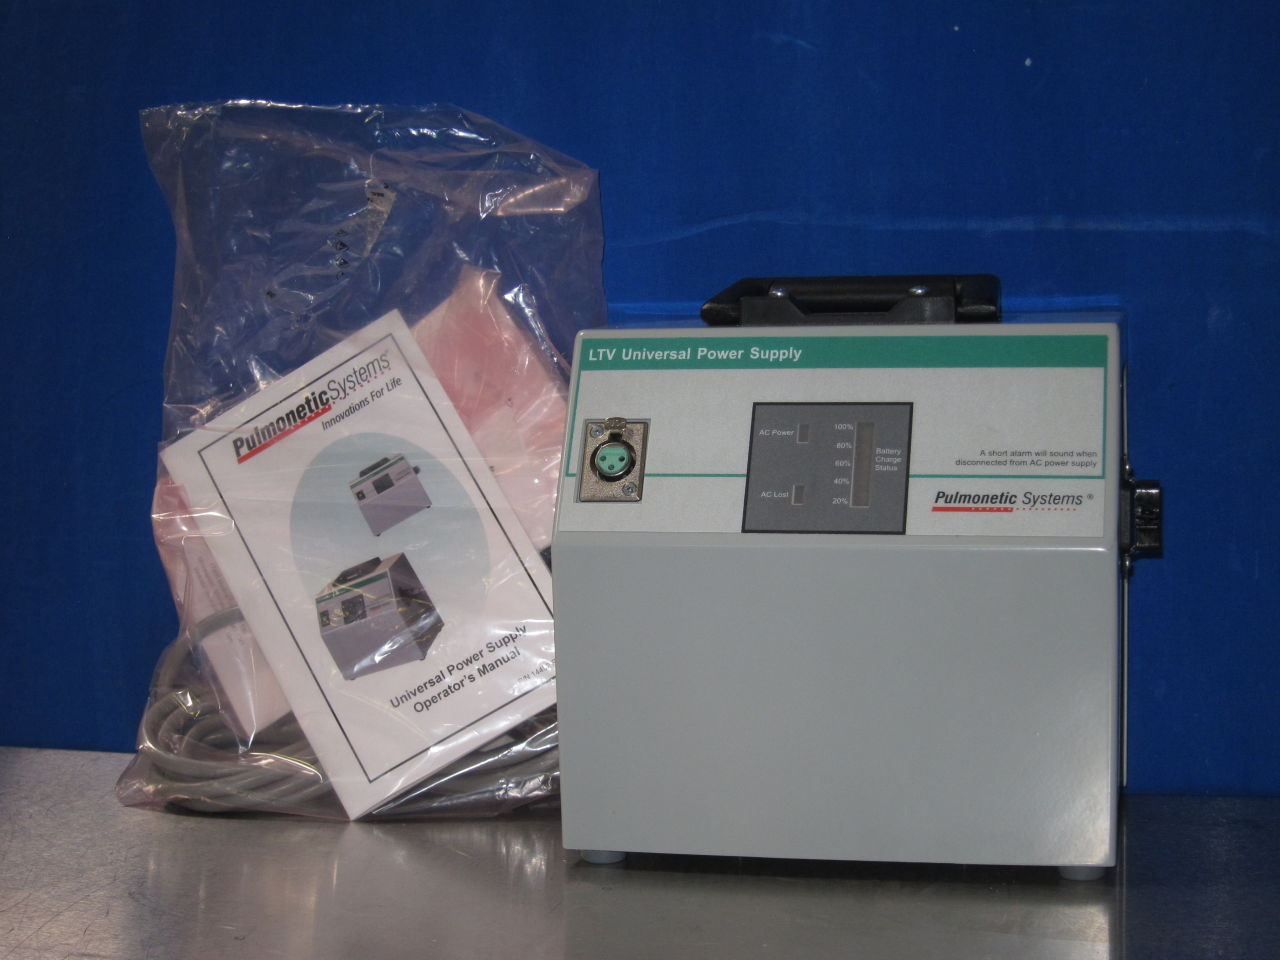 PULMONETIC SYSTEMS  Power Supply